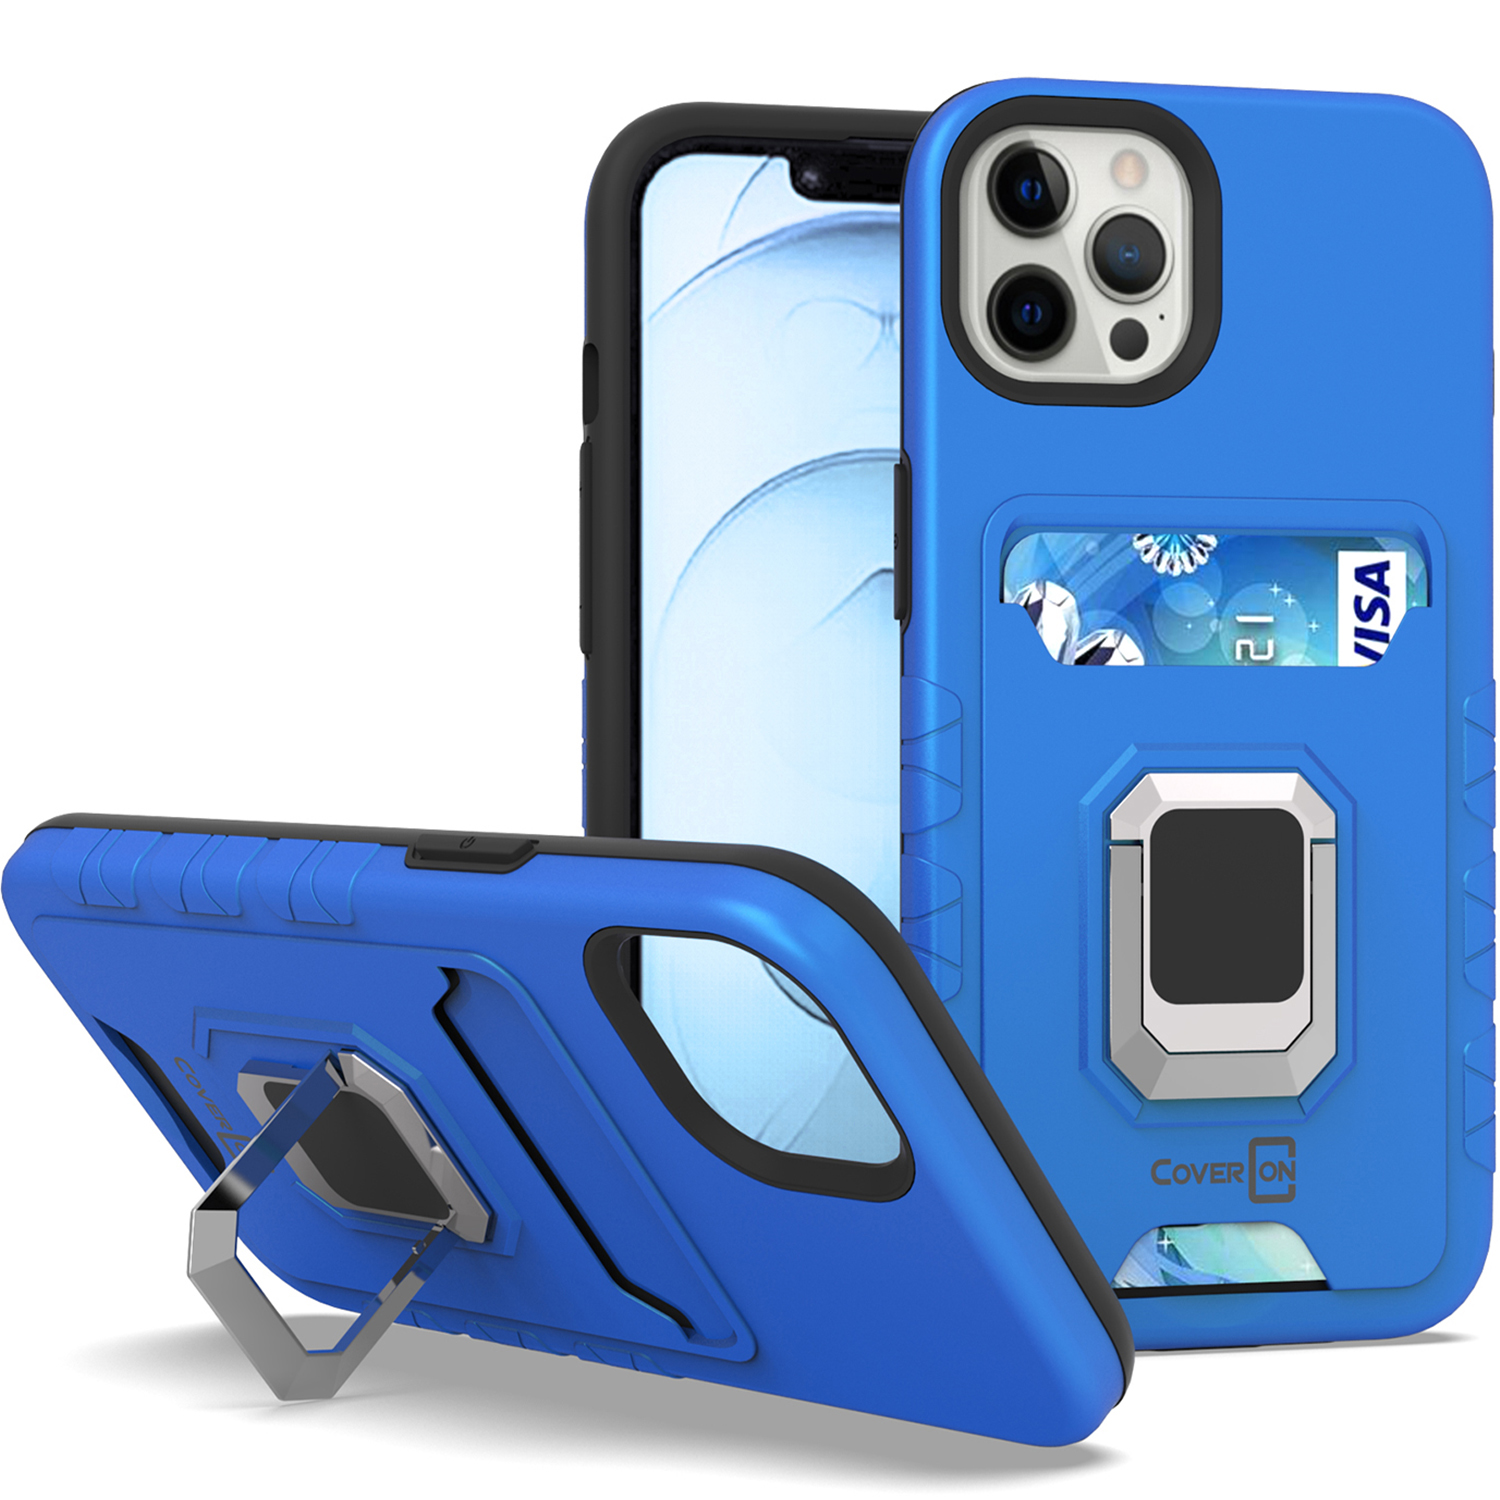 Slim Fit Hard Plastic Protective Phone Cover Case for ...